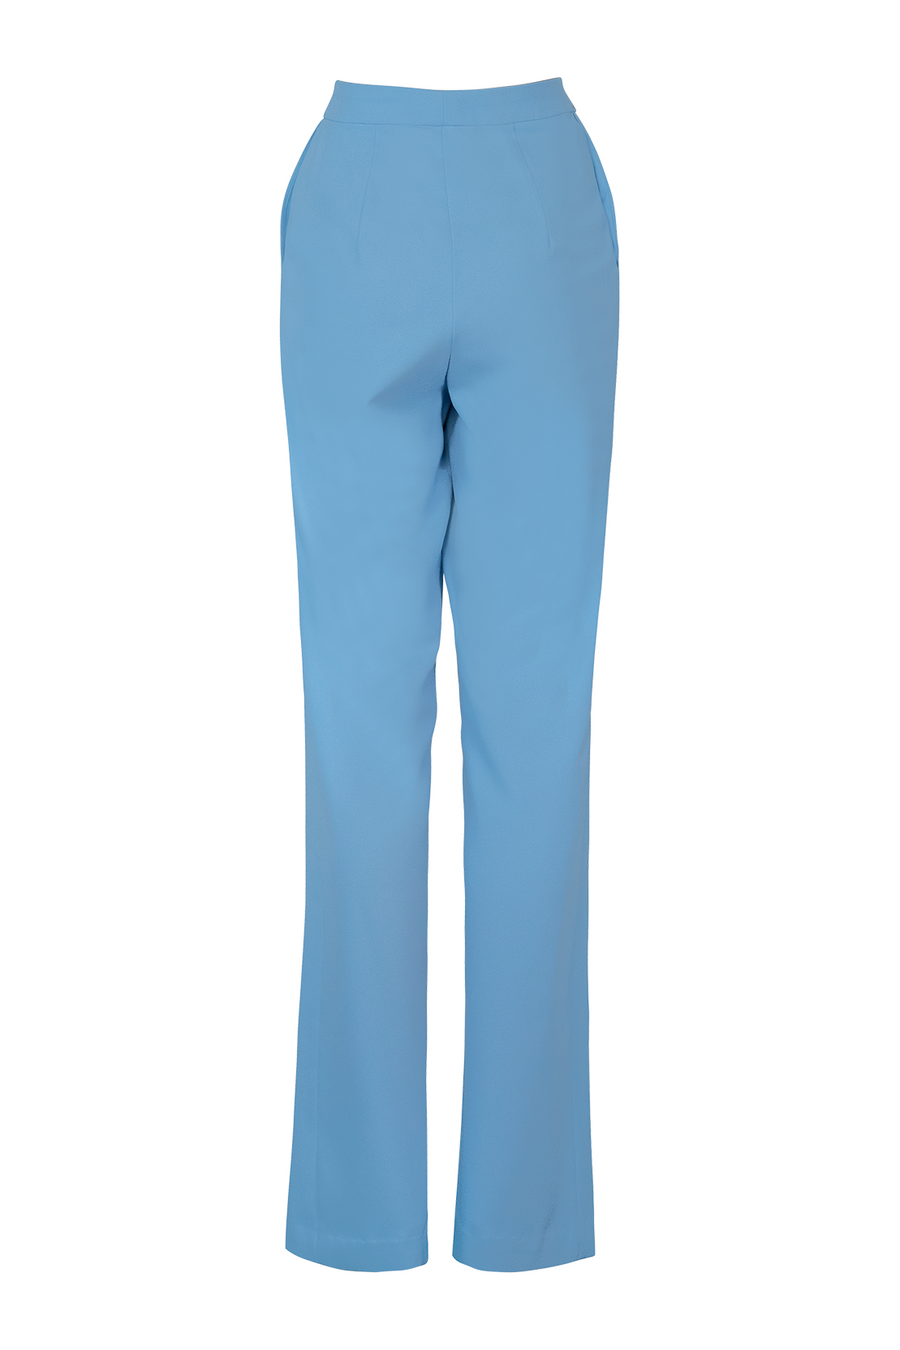 Blue Bird Suit/Pant